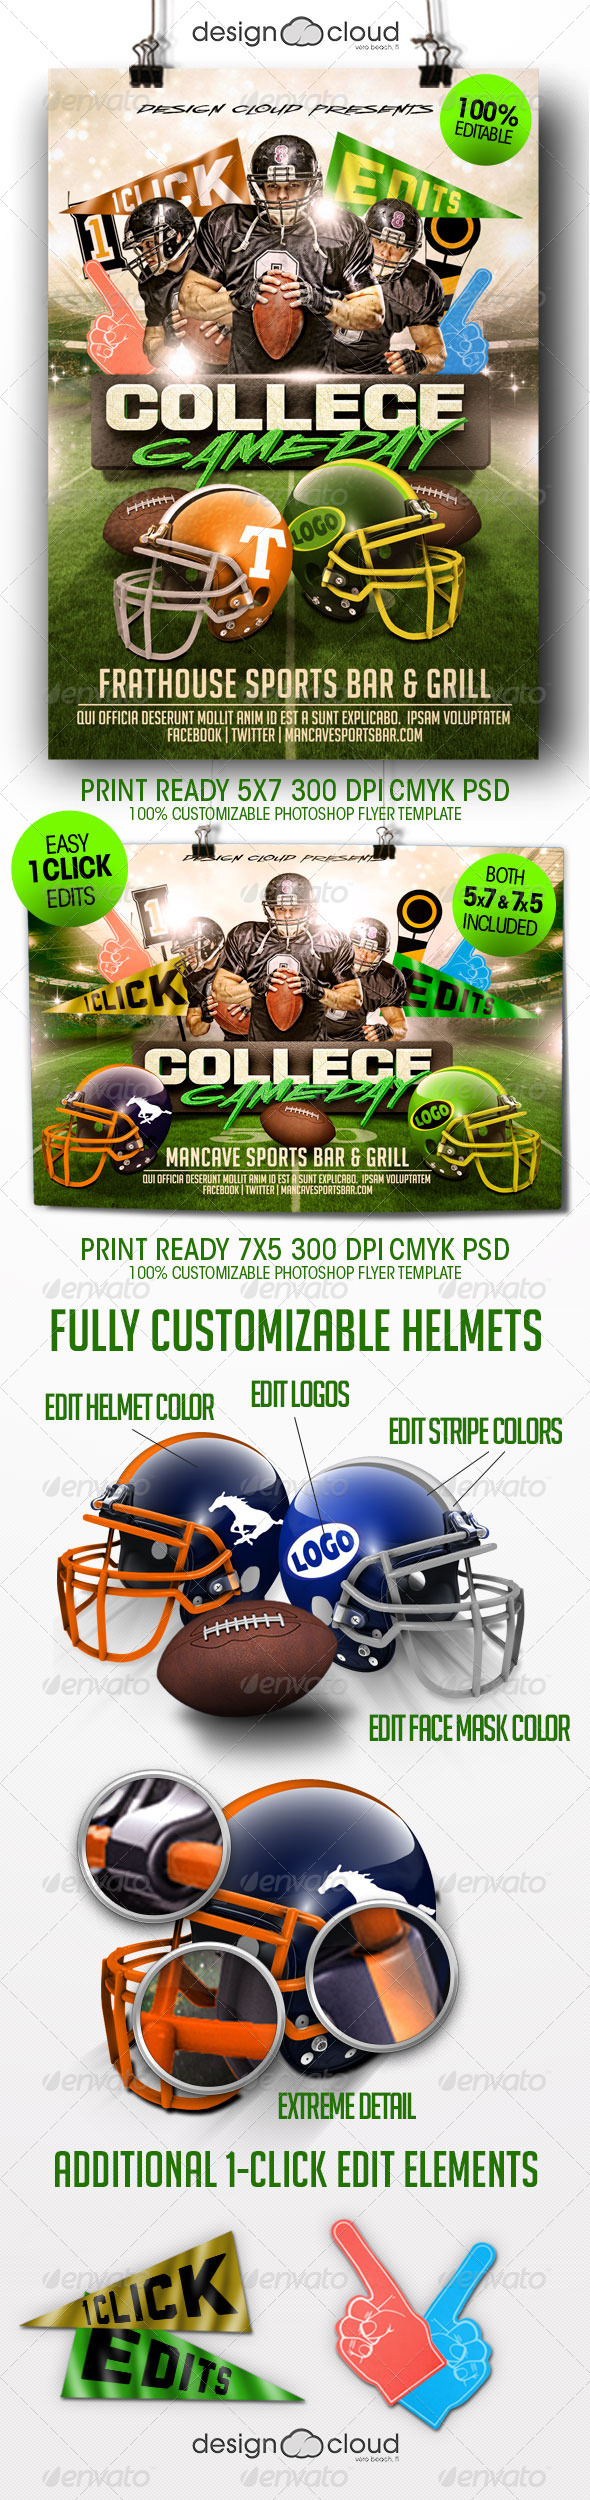 GraphicRiver College Football Game Day Flyer Template 8391322